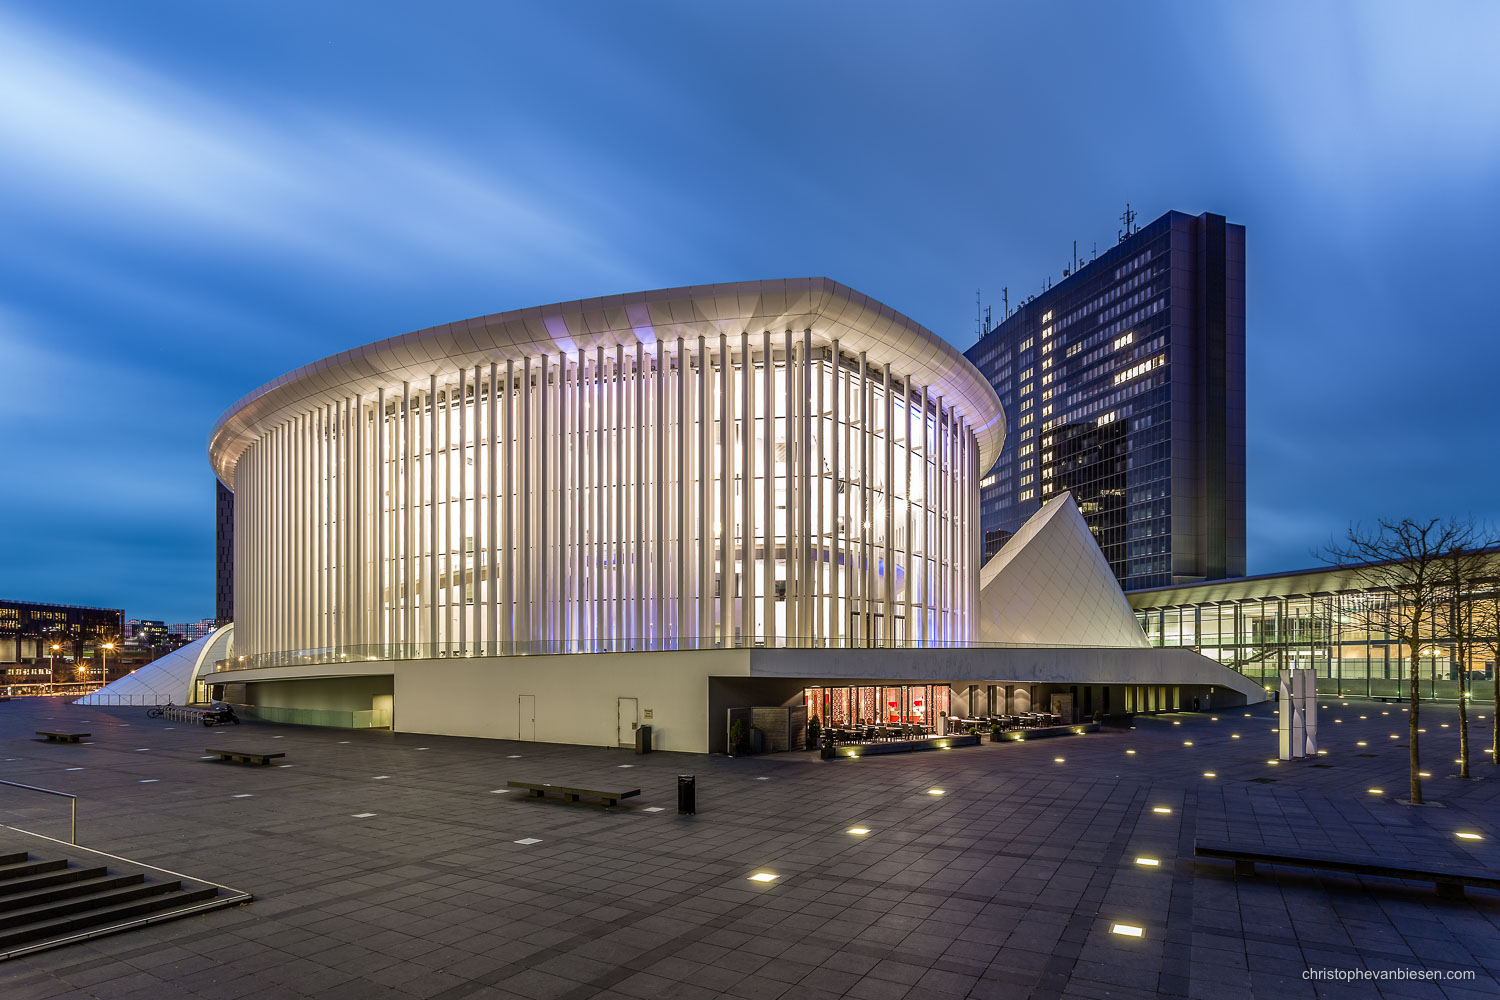 Top 25 photos made in Luxembourg - Luxembourg City's Philharmonie concert hall